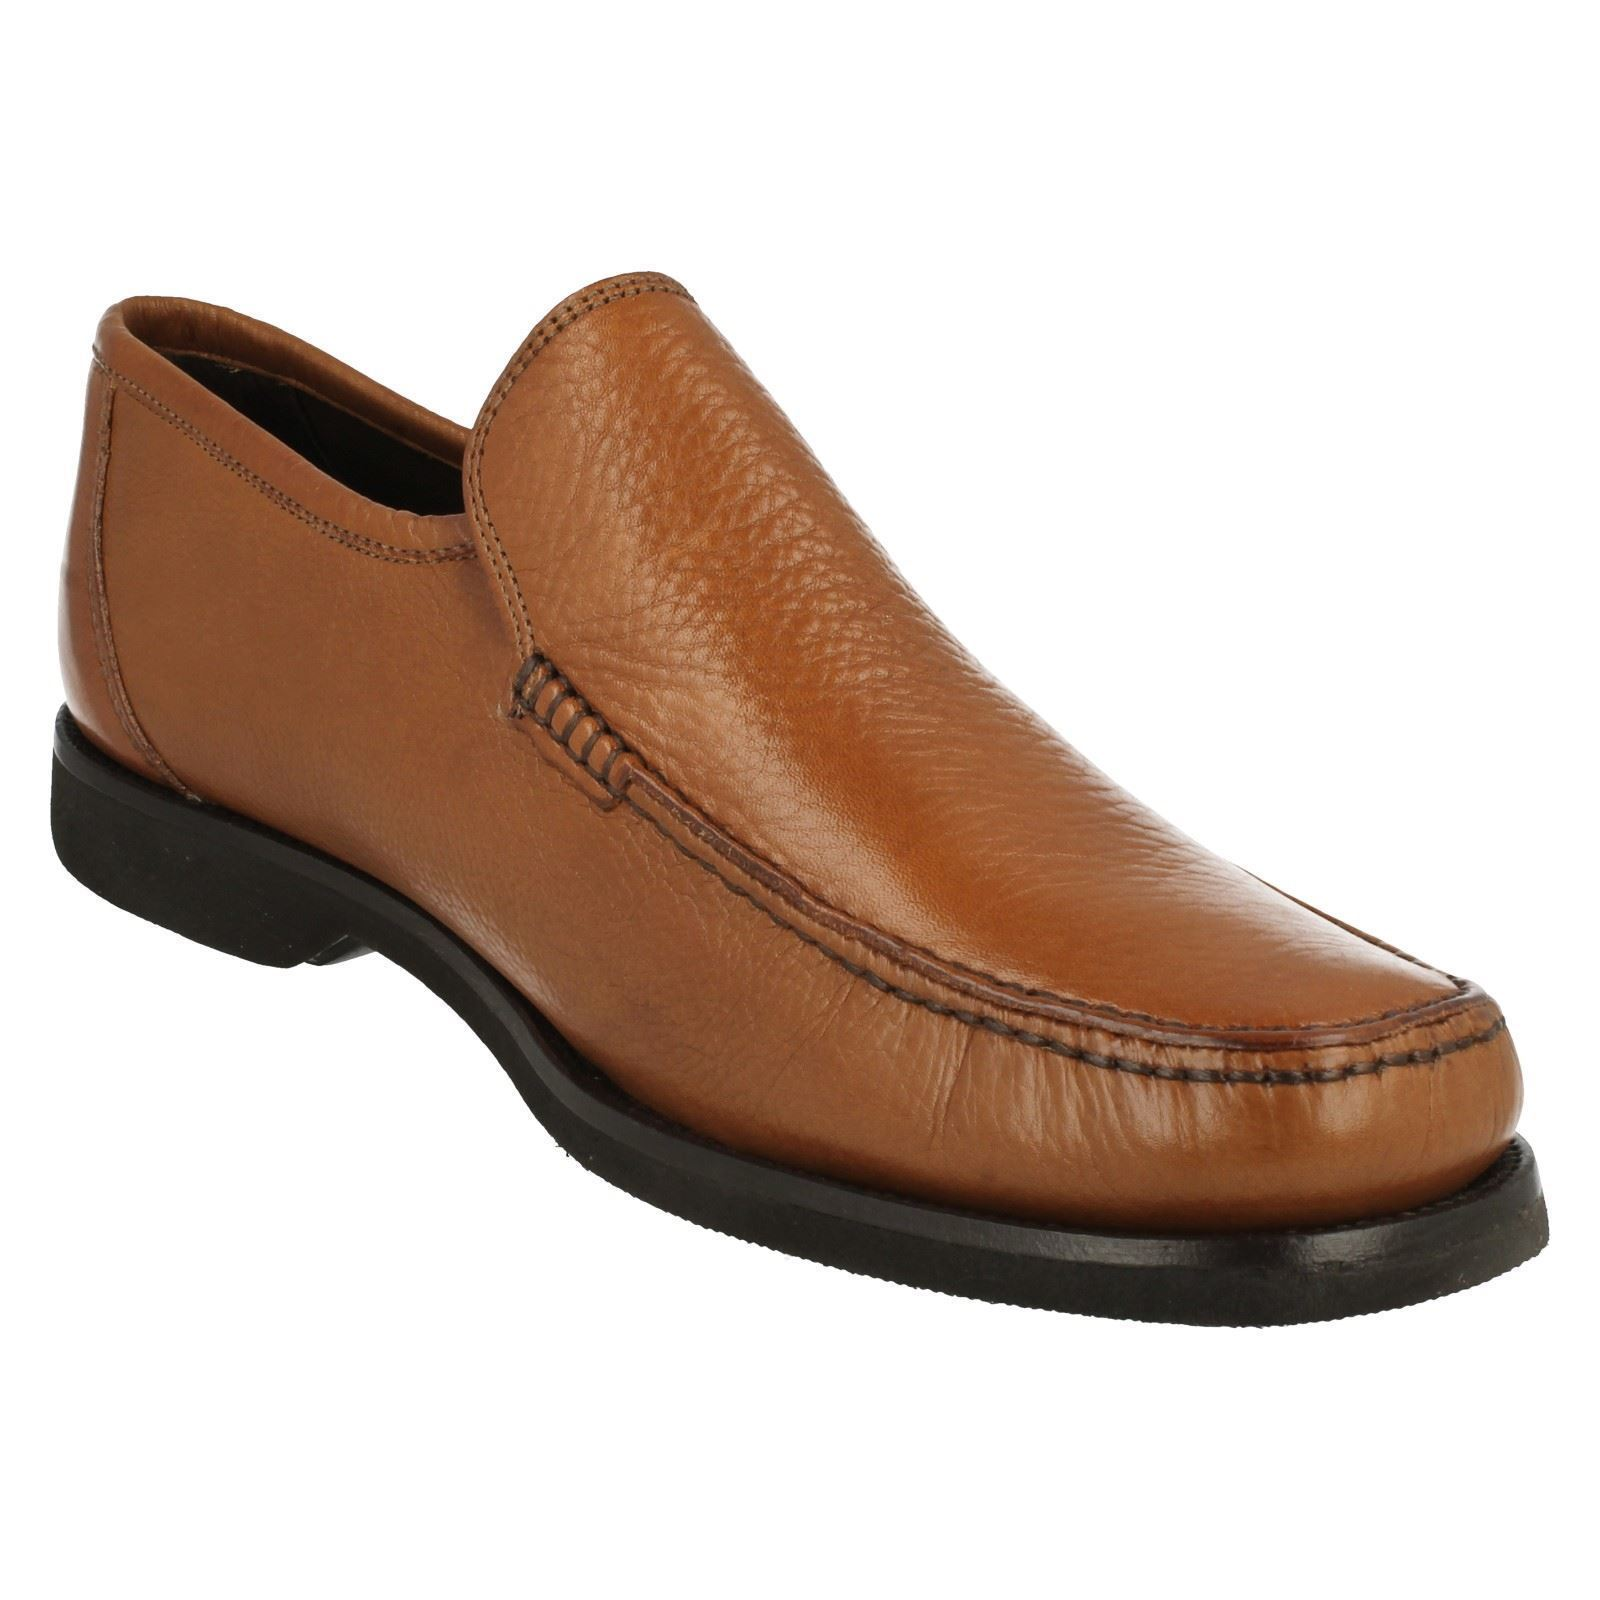 Hommes anatomic & Co casual slip on chaussures style-angra style-angra style-angra 979740 01bc0b